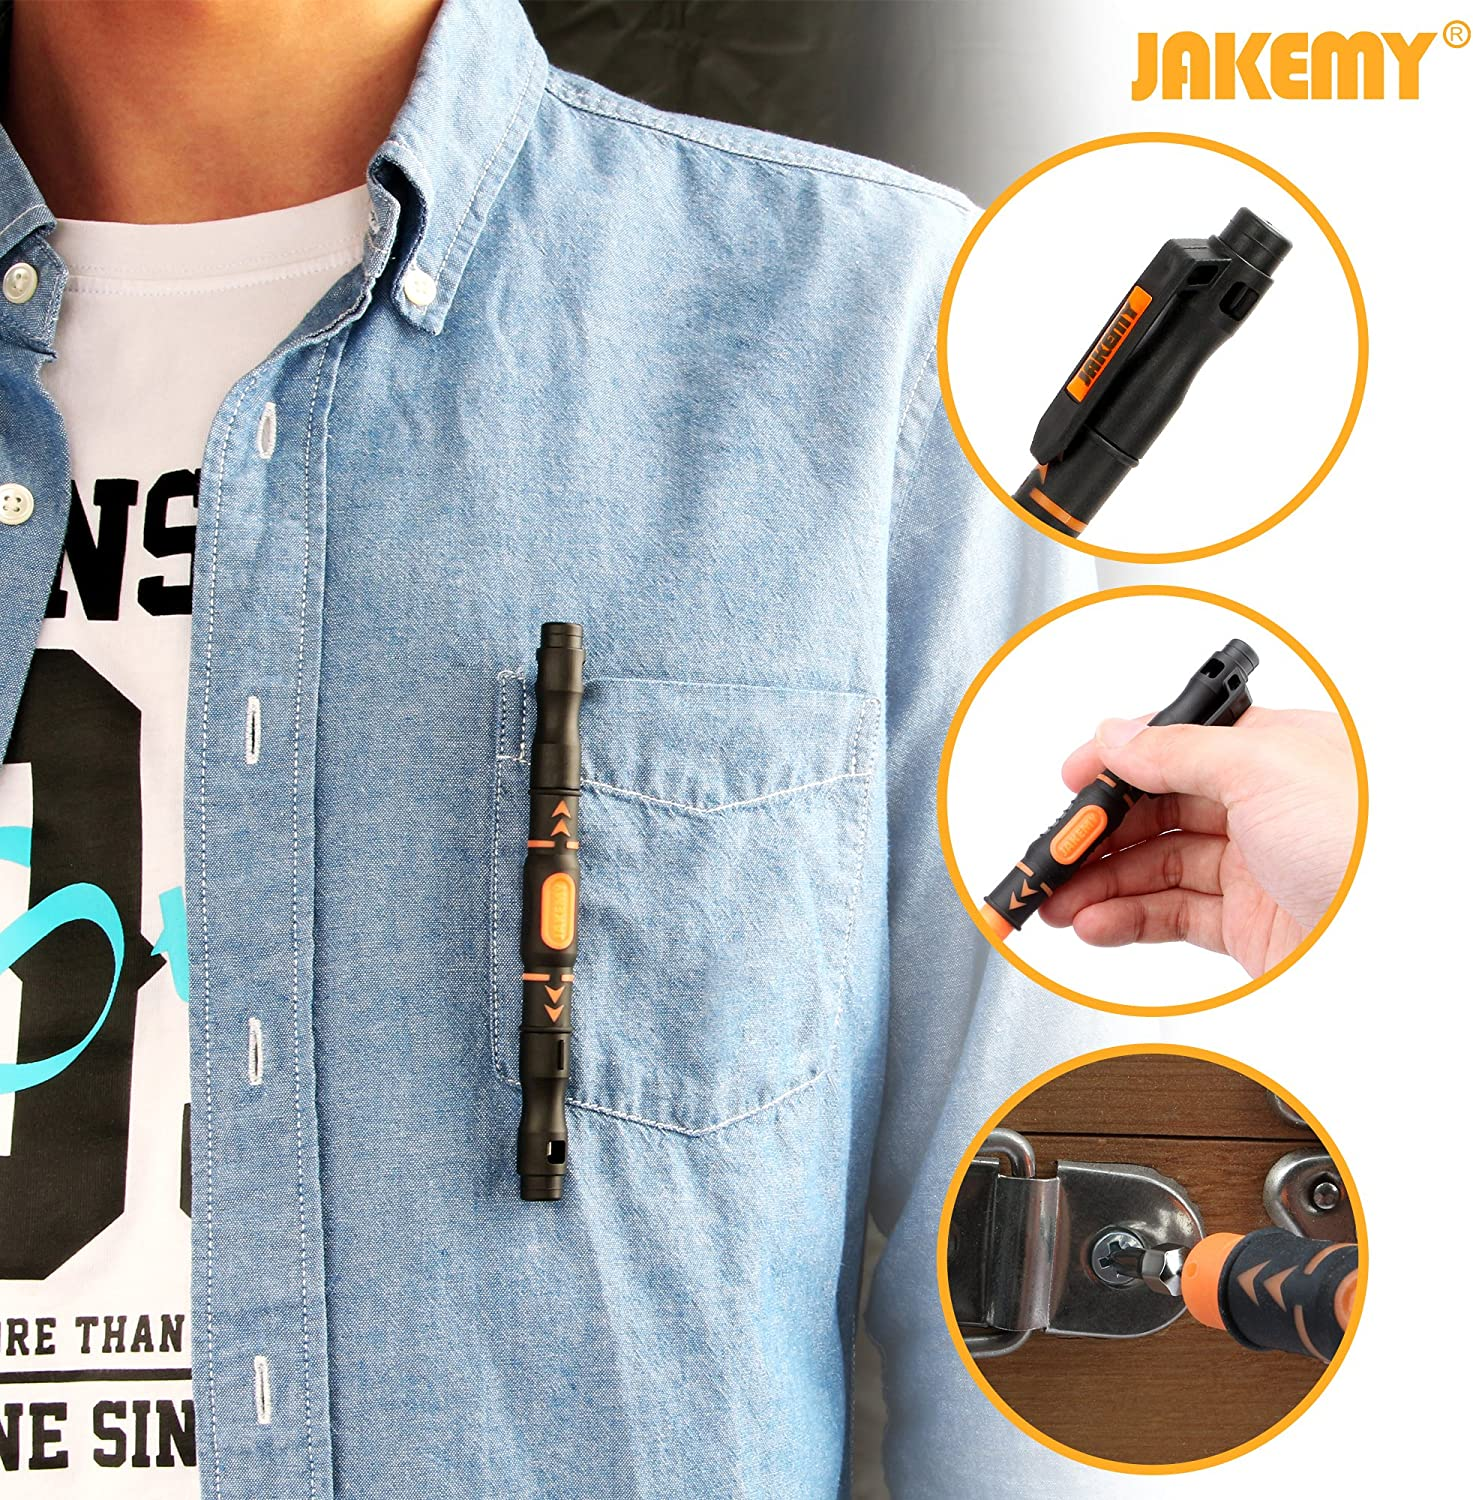 3 PACK Jakemy Precision Multibit Pocket Screwdriver with 4 Assorted Bits